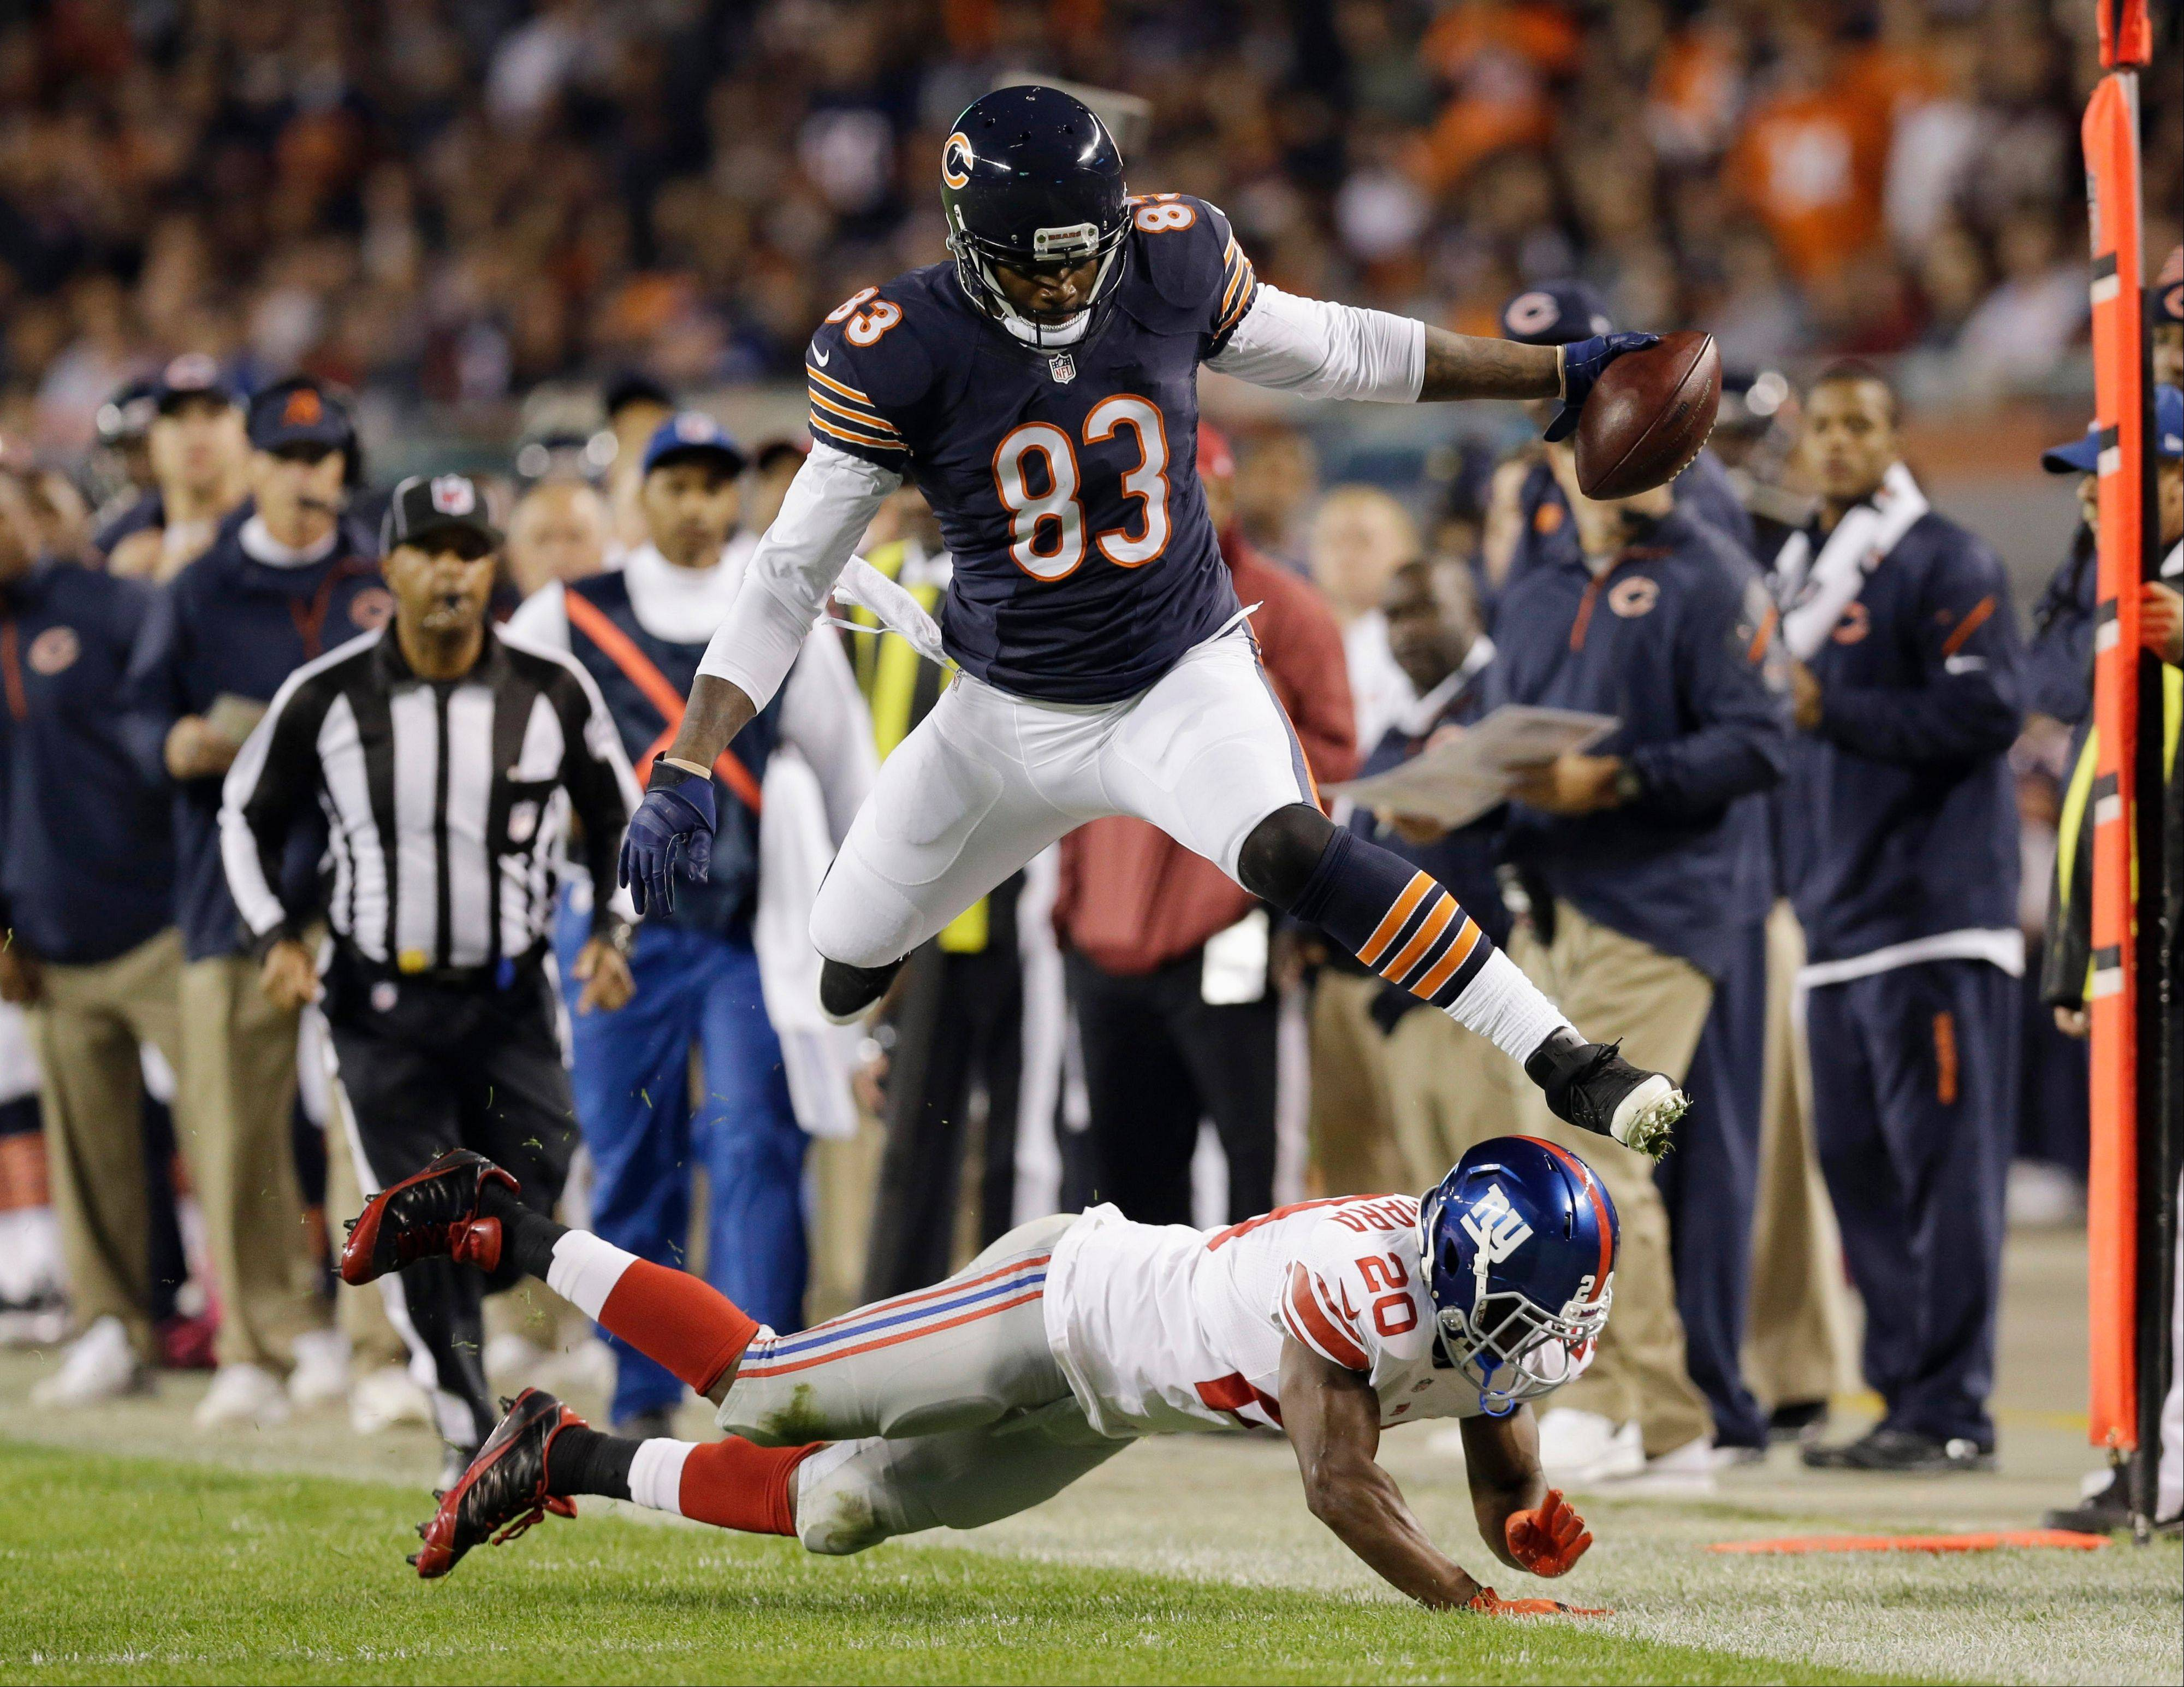 Chicago Bears tight end Martellus Bennett (83) leaps over New York Giants cornerback Prince Amukamara (20) in the first half of an NFL football game, Thursday, Oct. 10, 2013, in Chicago.